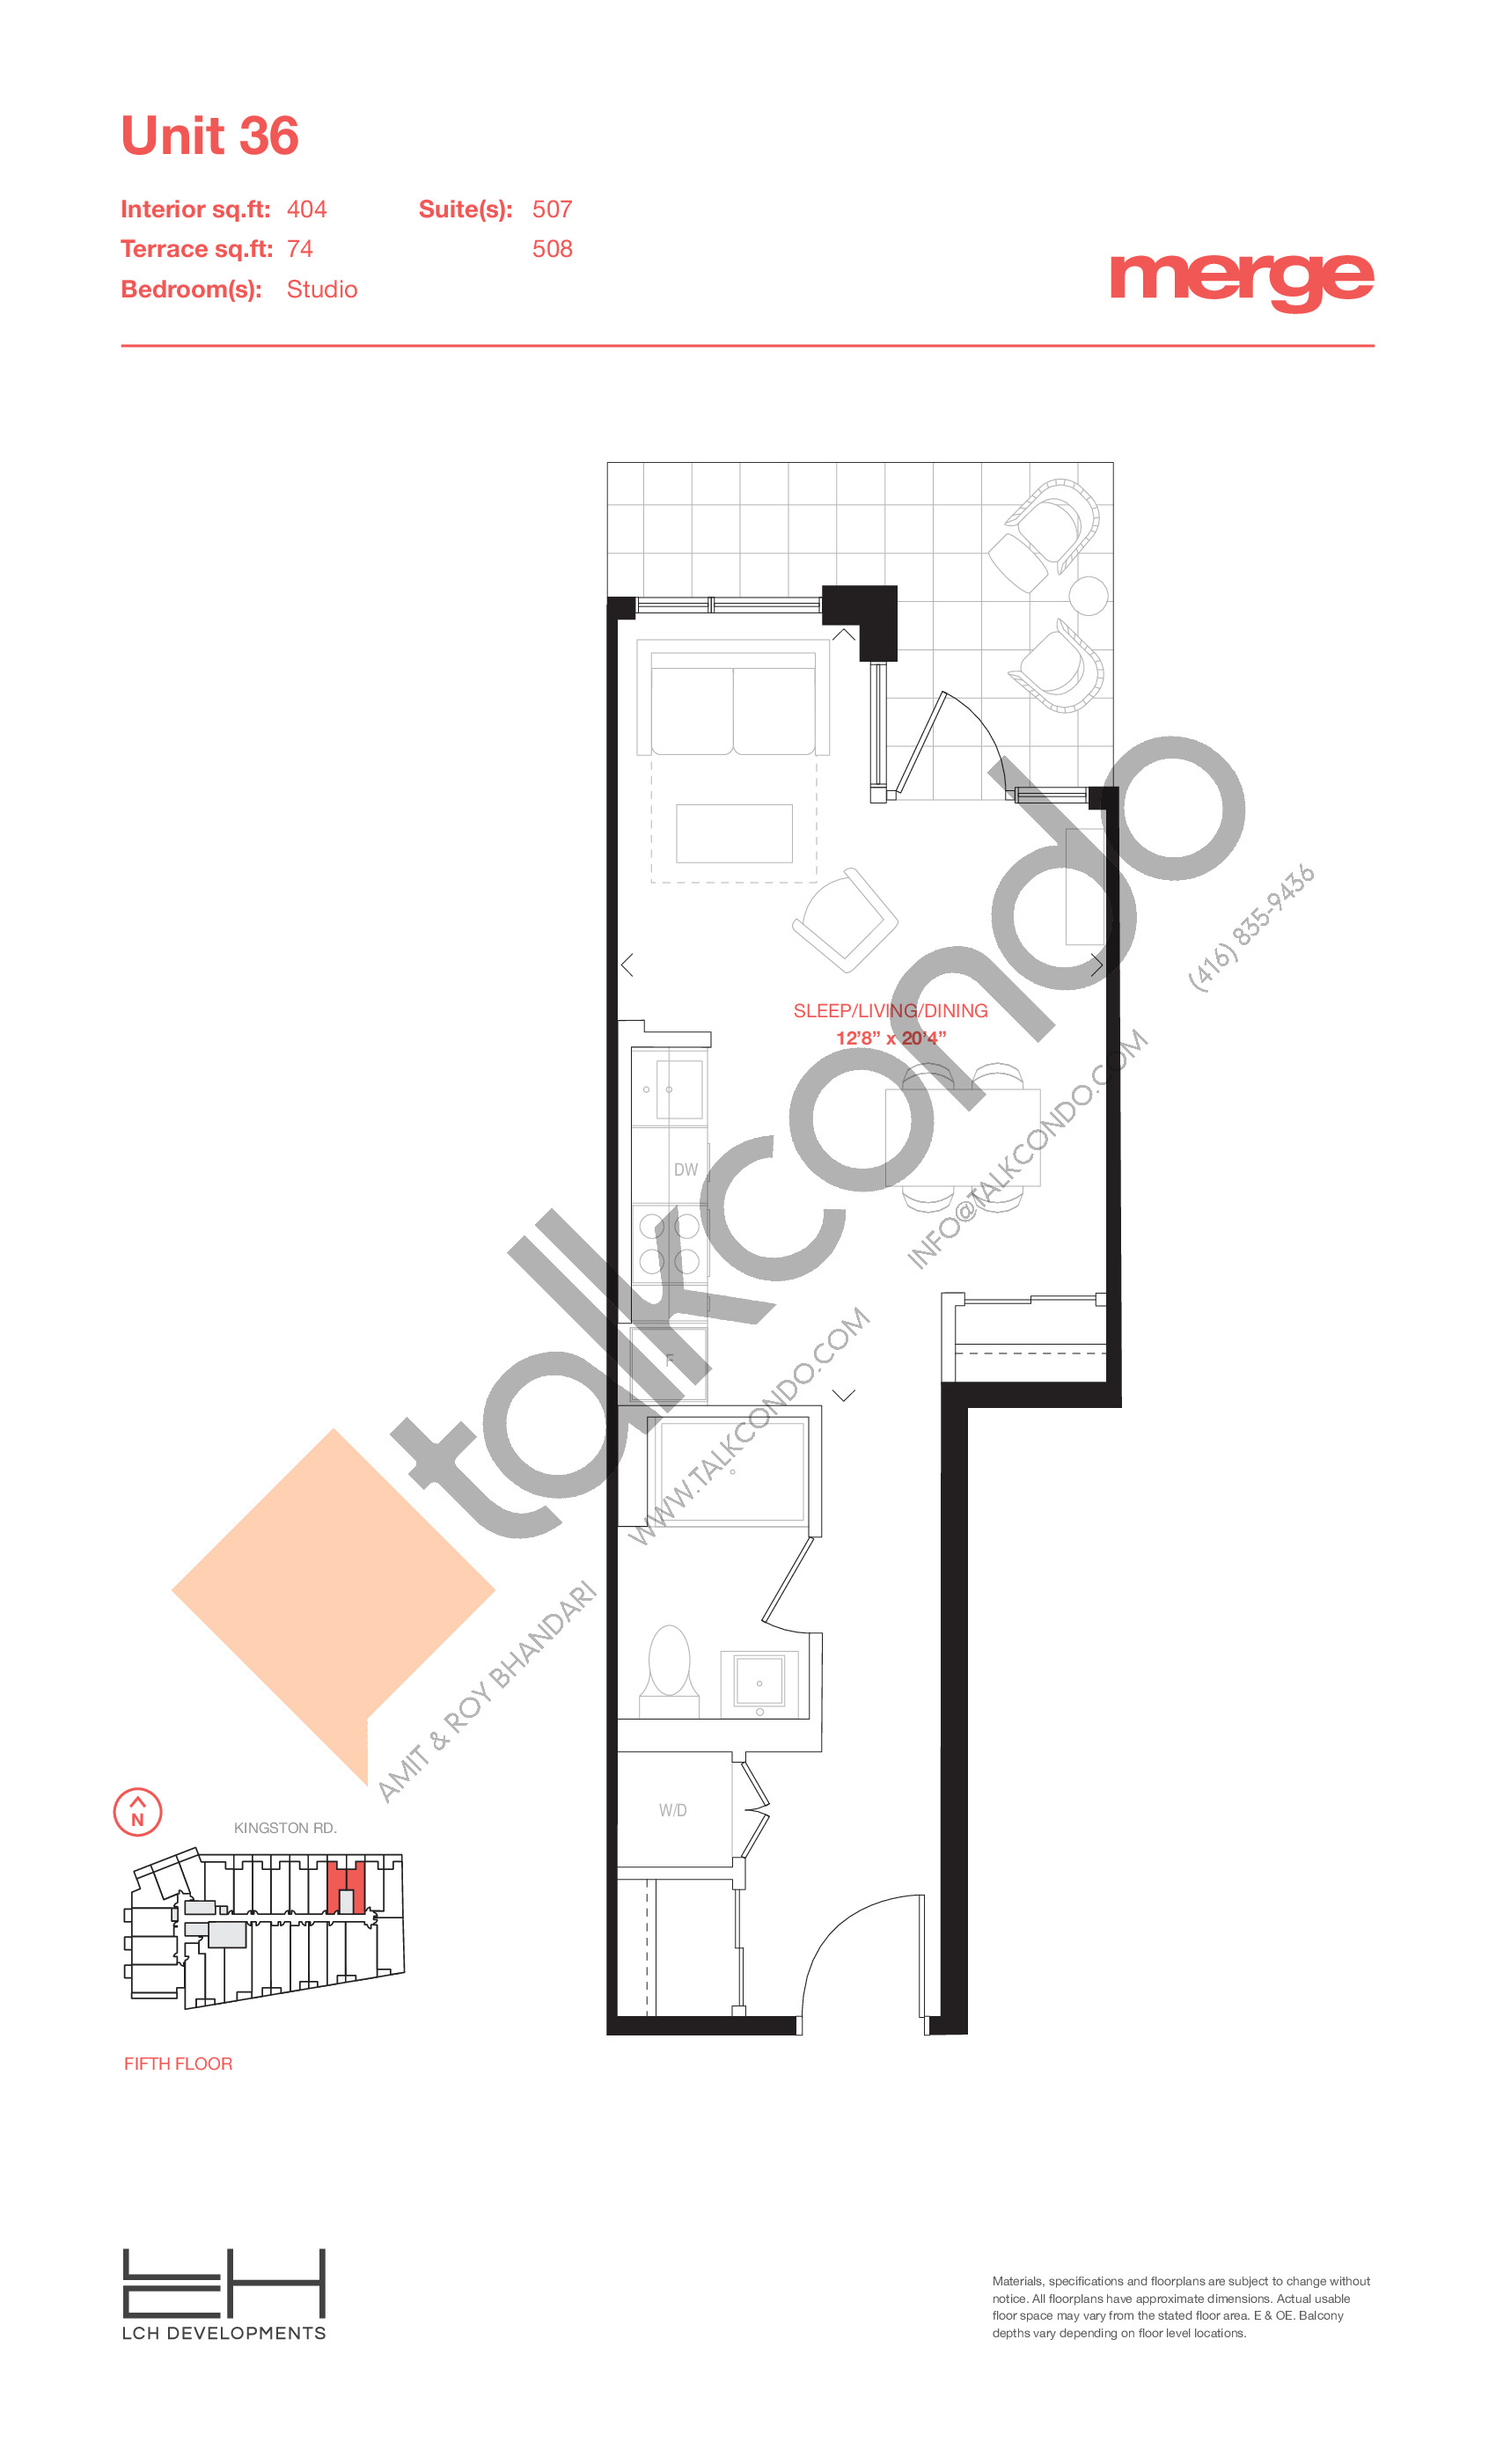 Unit 36 - Terraces Floor Plan at Merge Condos - 404 sq.ft